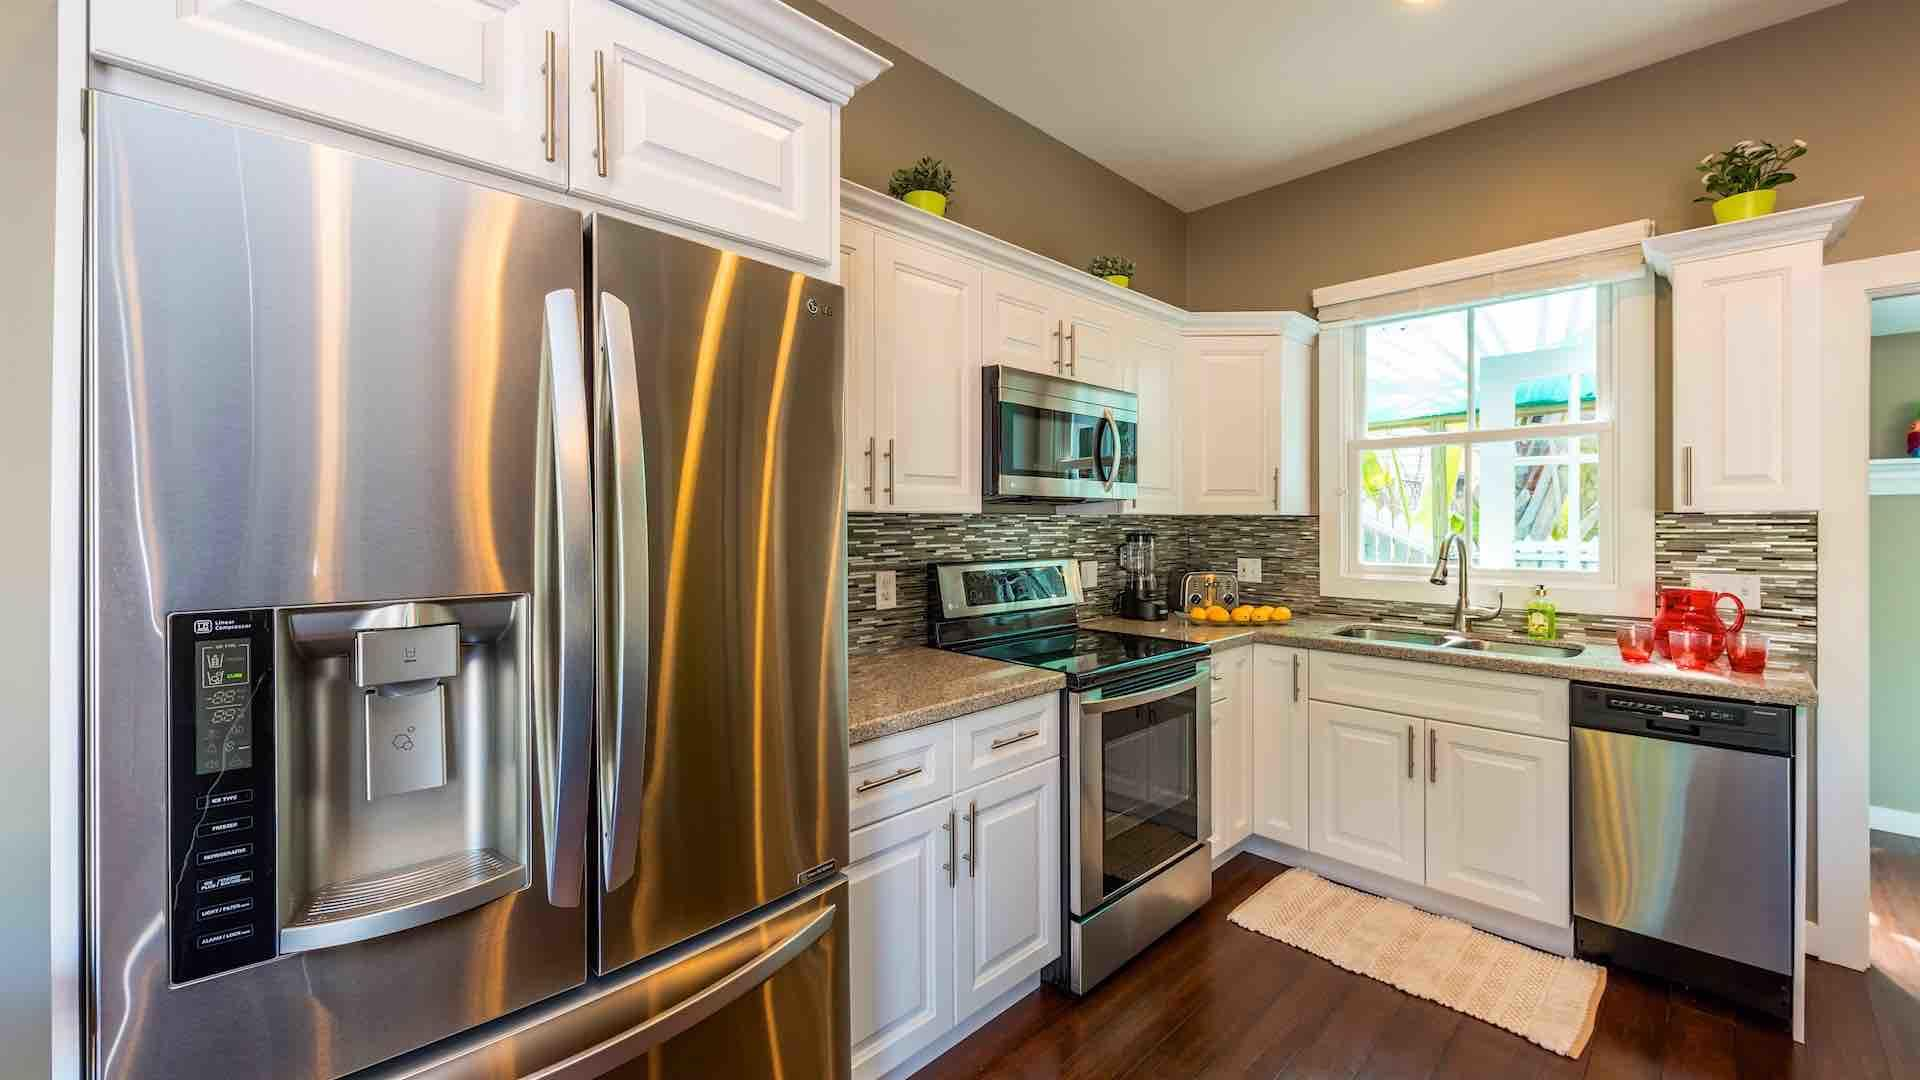 The fully upgraded kitchen is completely equipped with all new stainless steel appliances...